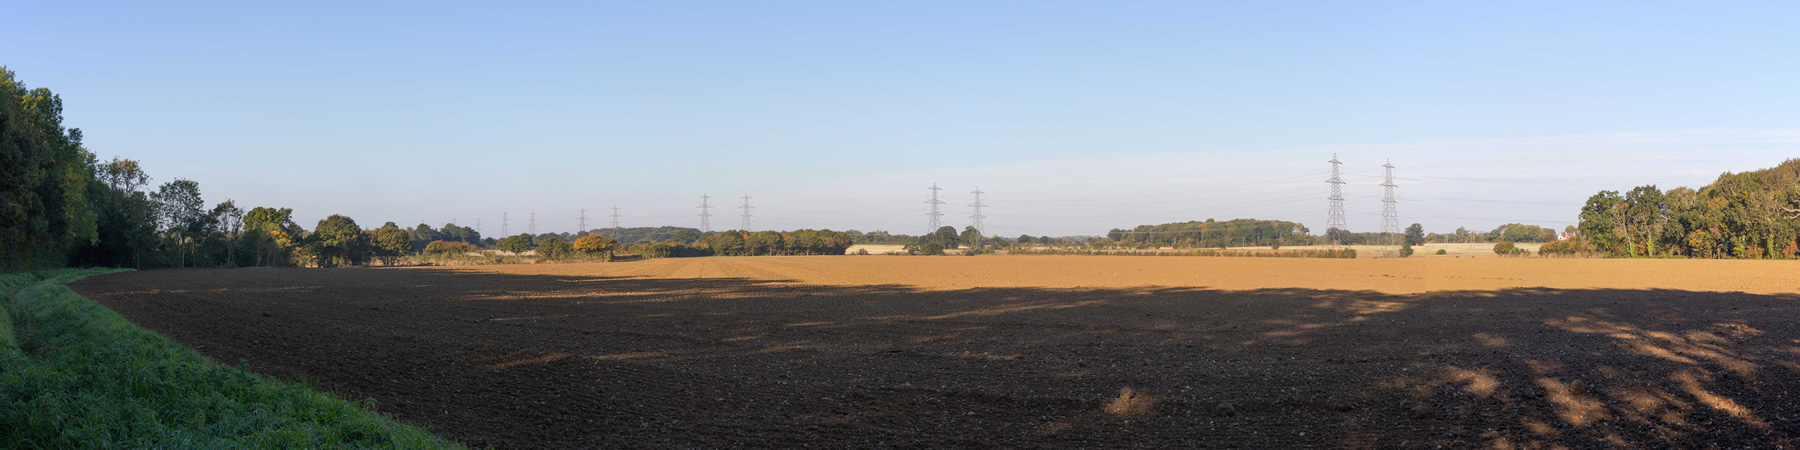 SPR proposed substation sites view from Grove Road, Friston before EA1N & EA2.